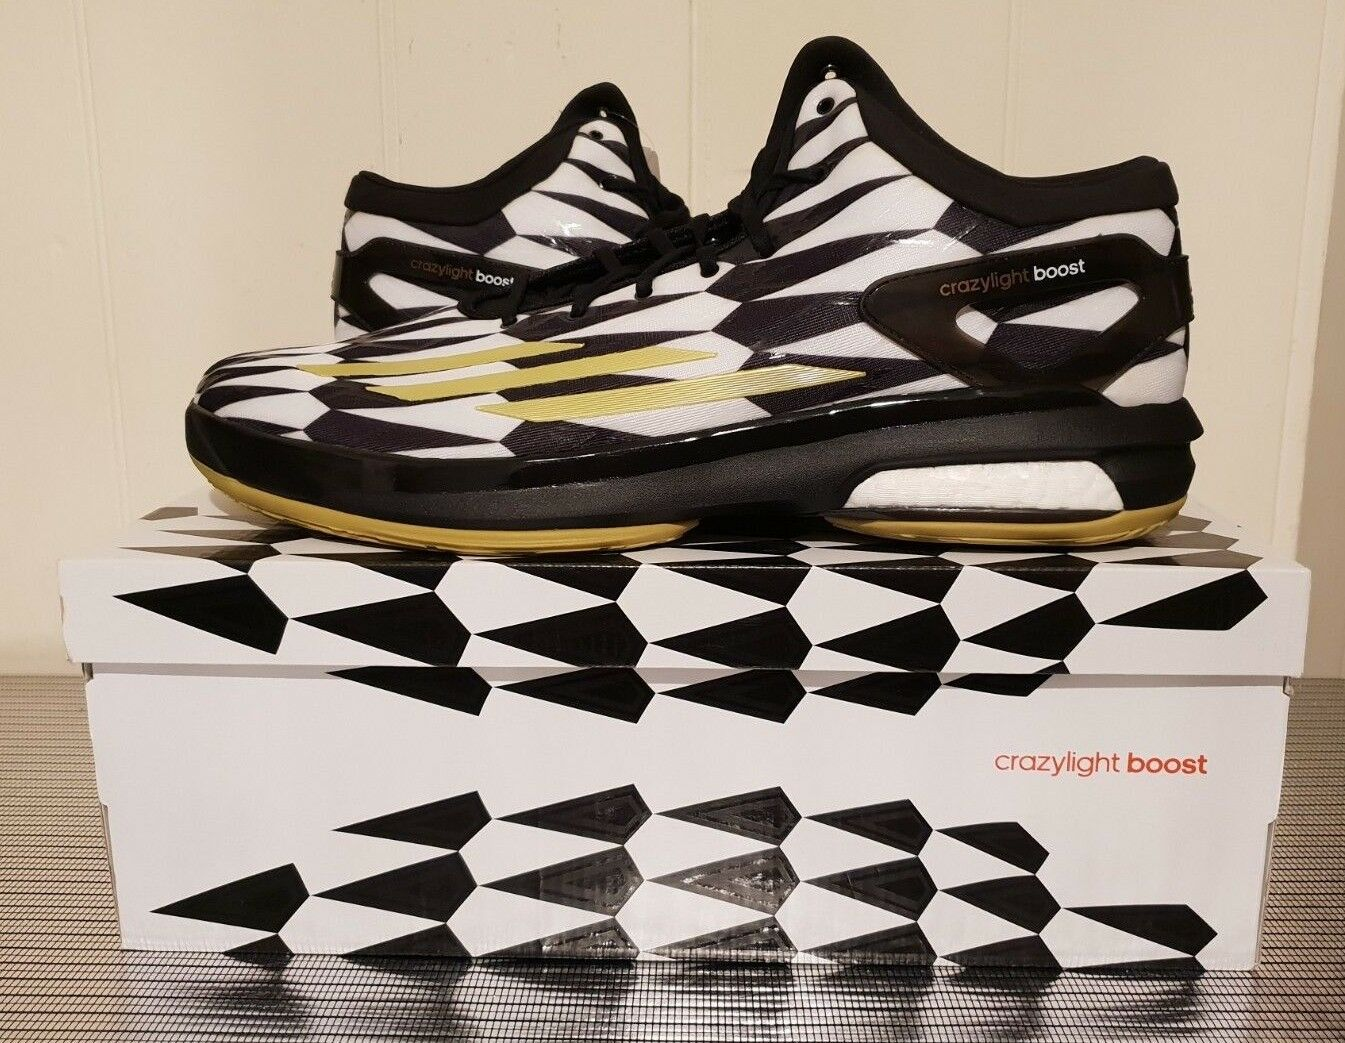 Adidas Crazy Light Boost Black And White Basketball Mens UK Size 17 NEW IN BOX